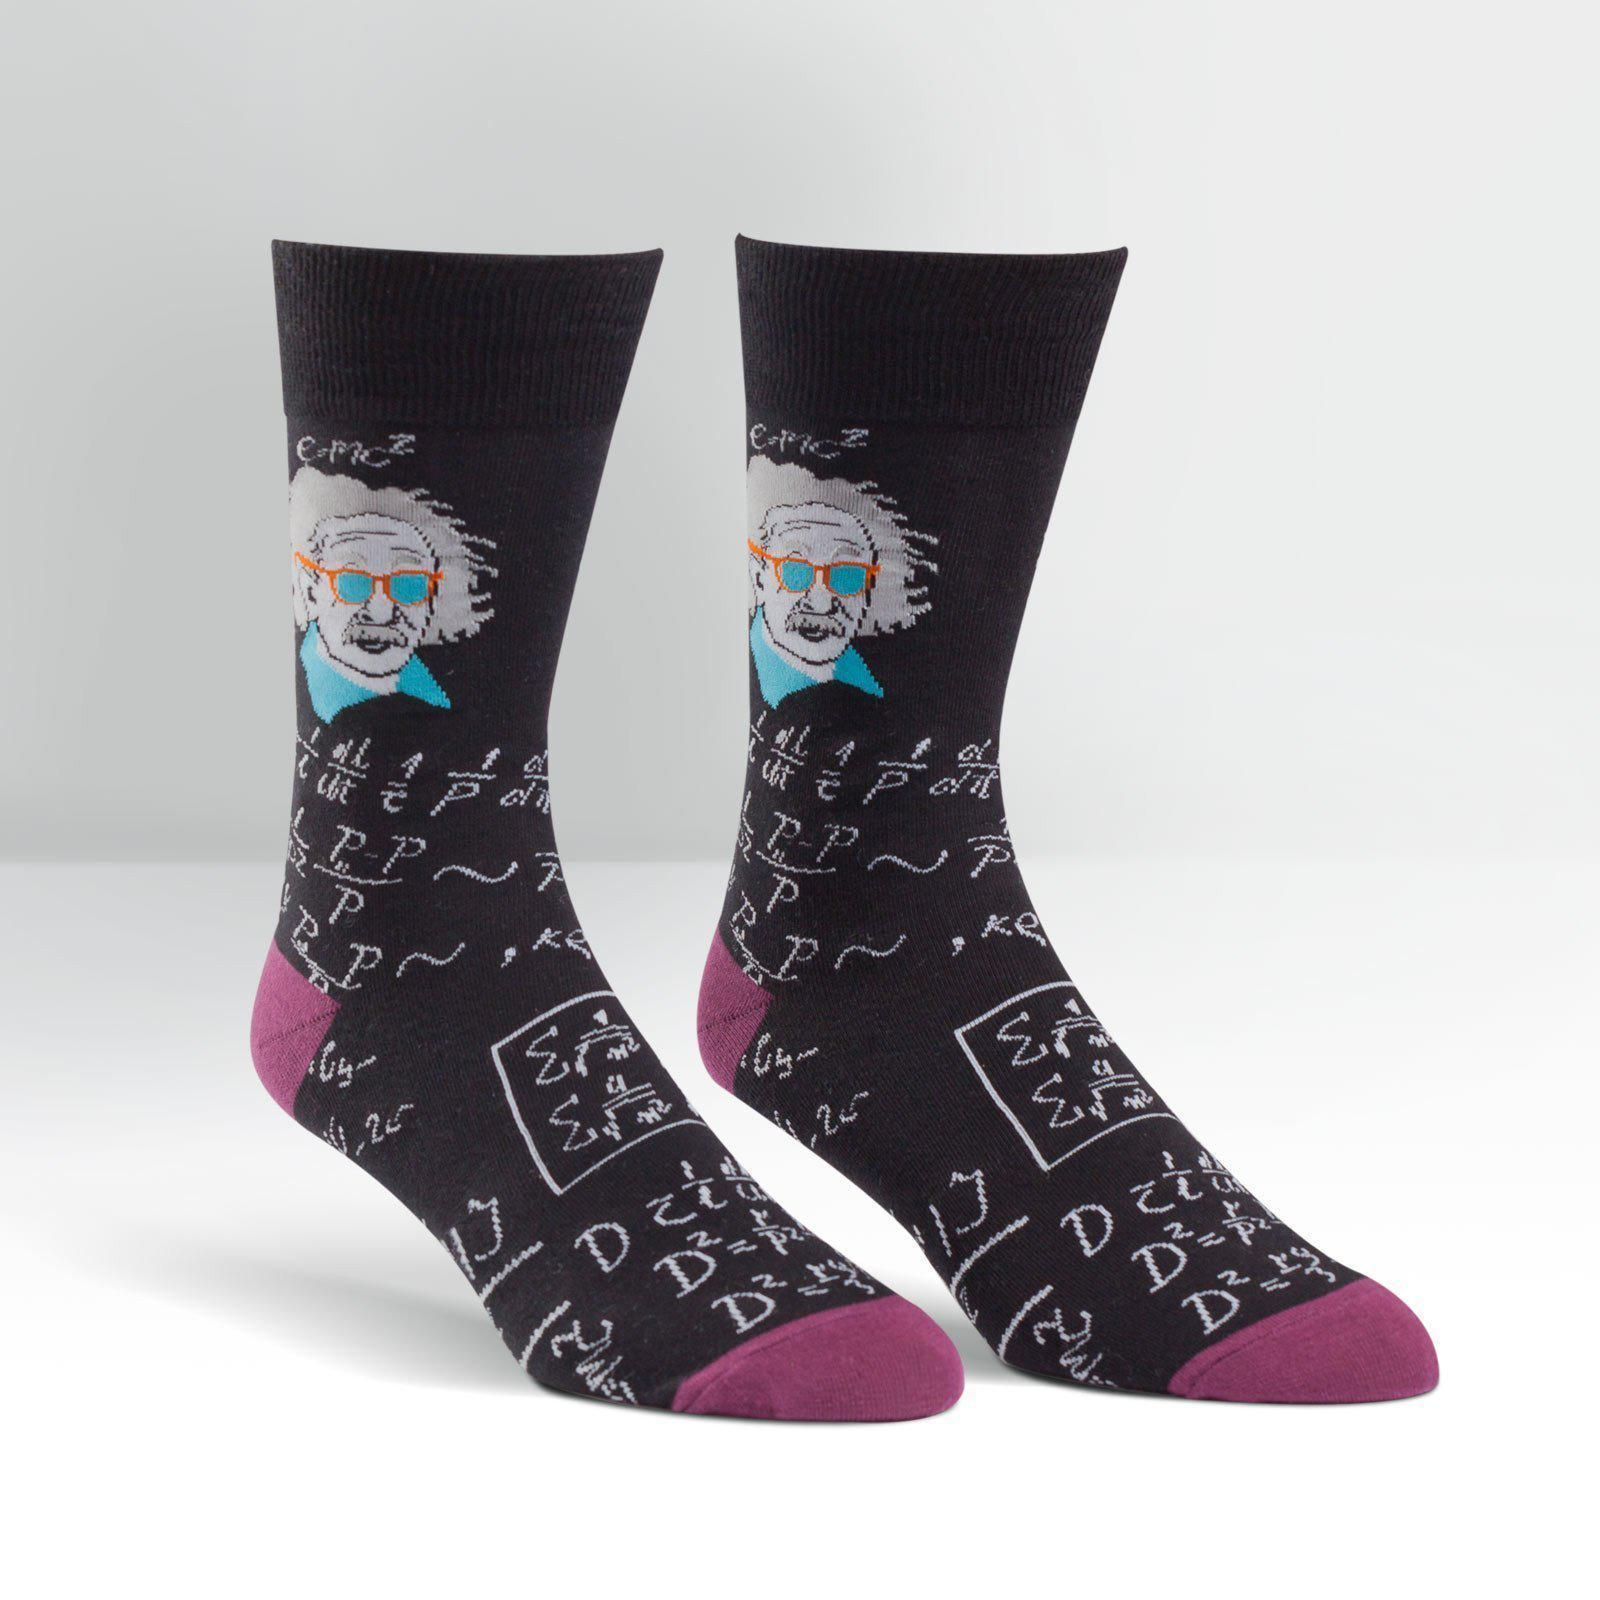 Sock It To Me - Relatively Cool Crew Socks | Men's - Knock Your Socks Off